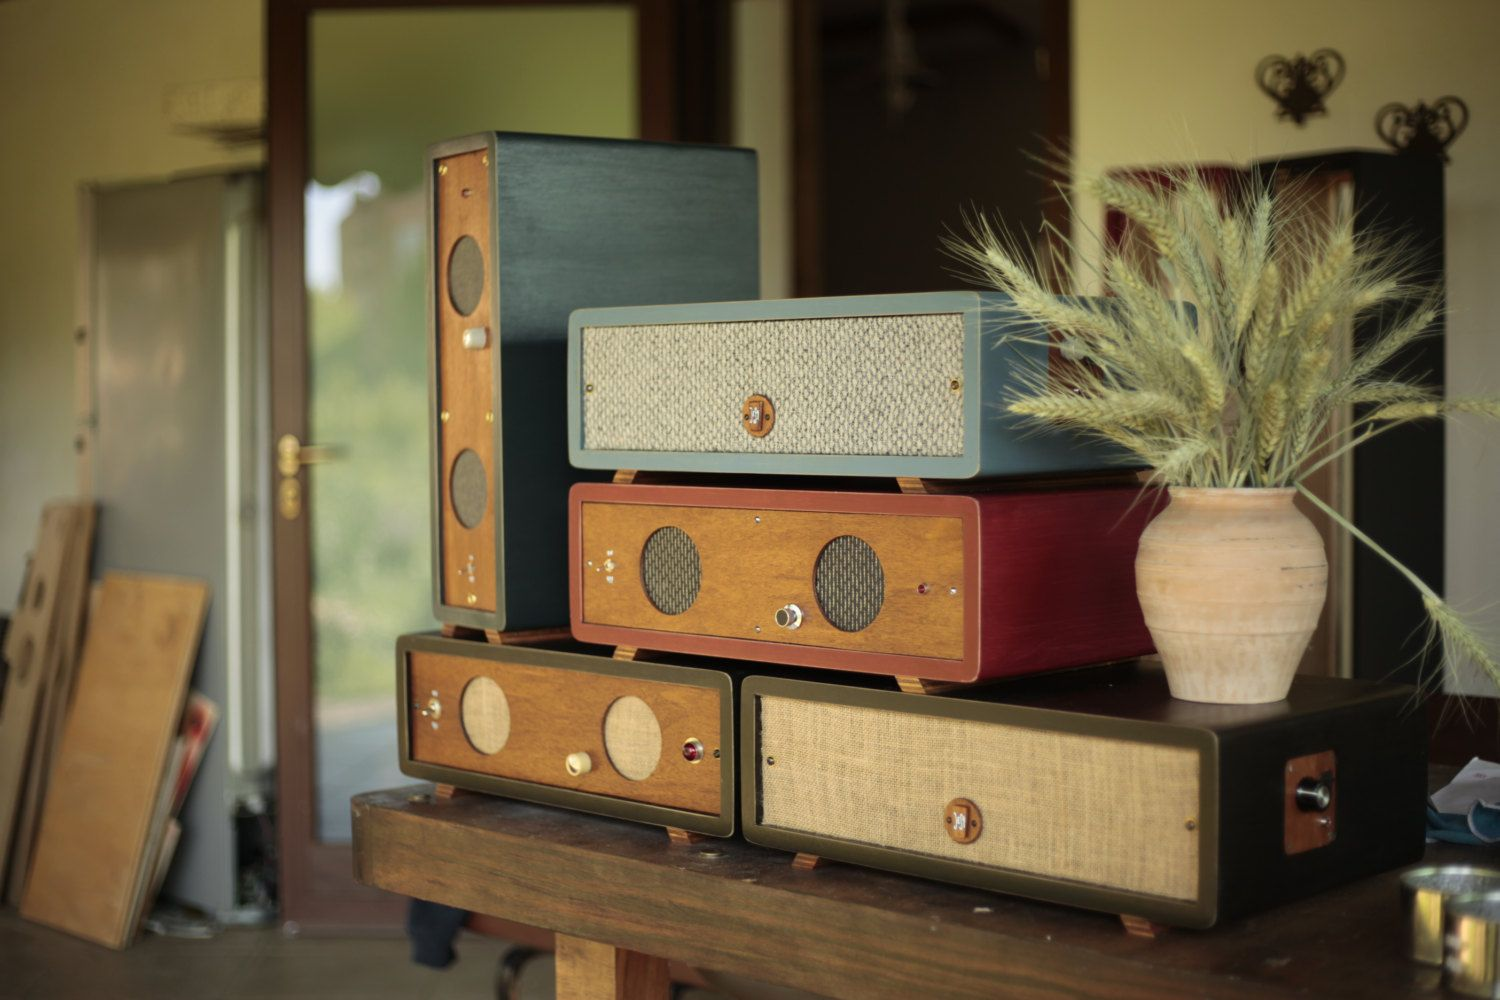 Visit: https://www.facebook.com/JesaOldFi It is an amplified stereo speaker system built from scratch, you can connect any device with rca to mini jack provided. NO BLUETOOTH! ONLY OLD DEAR MINIJACK. The structure is made of wood 16 mm mdf (or other types of wood on request) and the front in okumé marino, in a light transparent finish base low ecological fumes, but on request it is possible to give a flatting waterproof. The knobs control knobs and switches the bulbs are salvaged and…